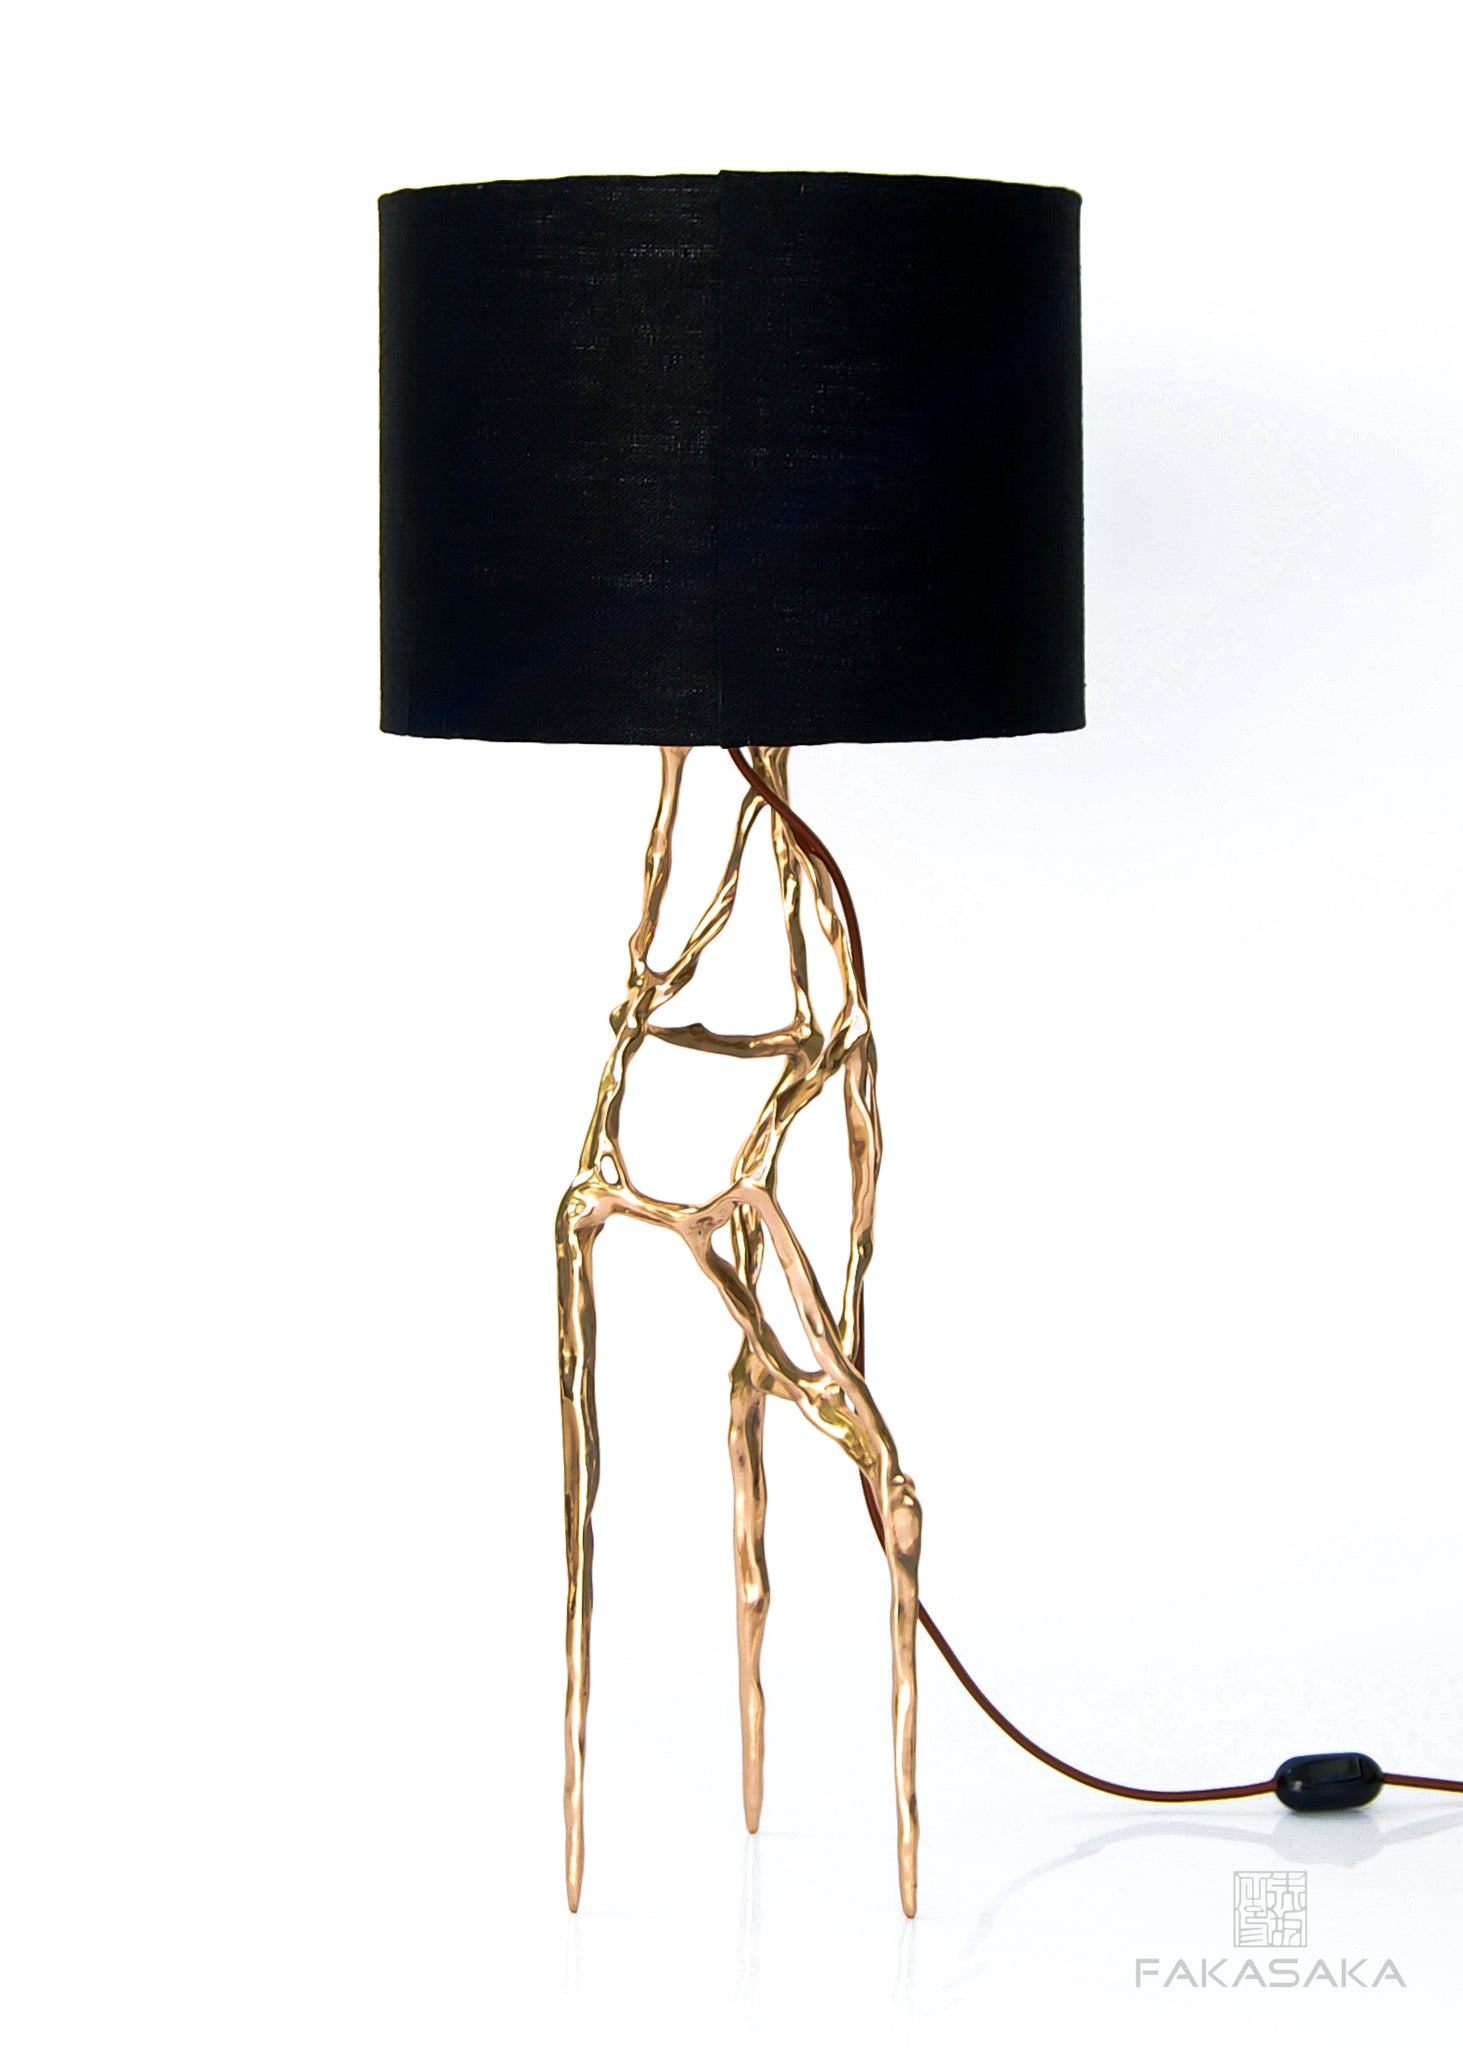 ALEXIA TABLE LAMP<br><br>BLACK LINEN SHADE<br>POLISHED BRONZE